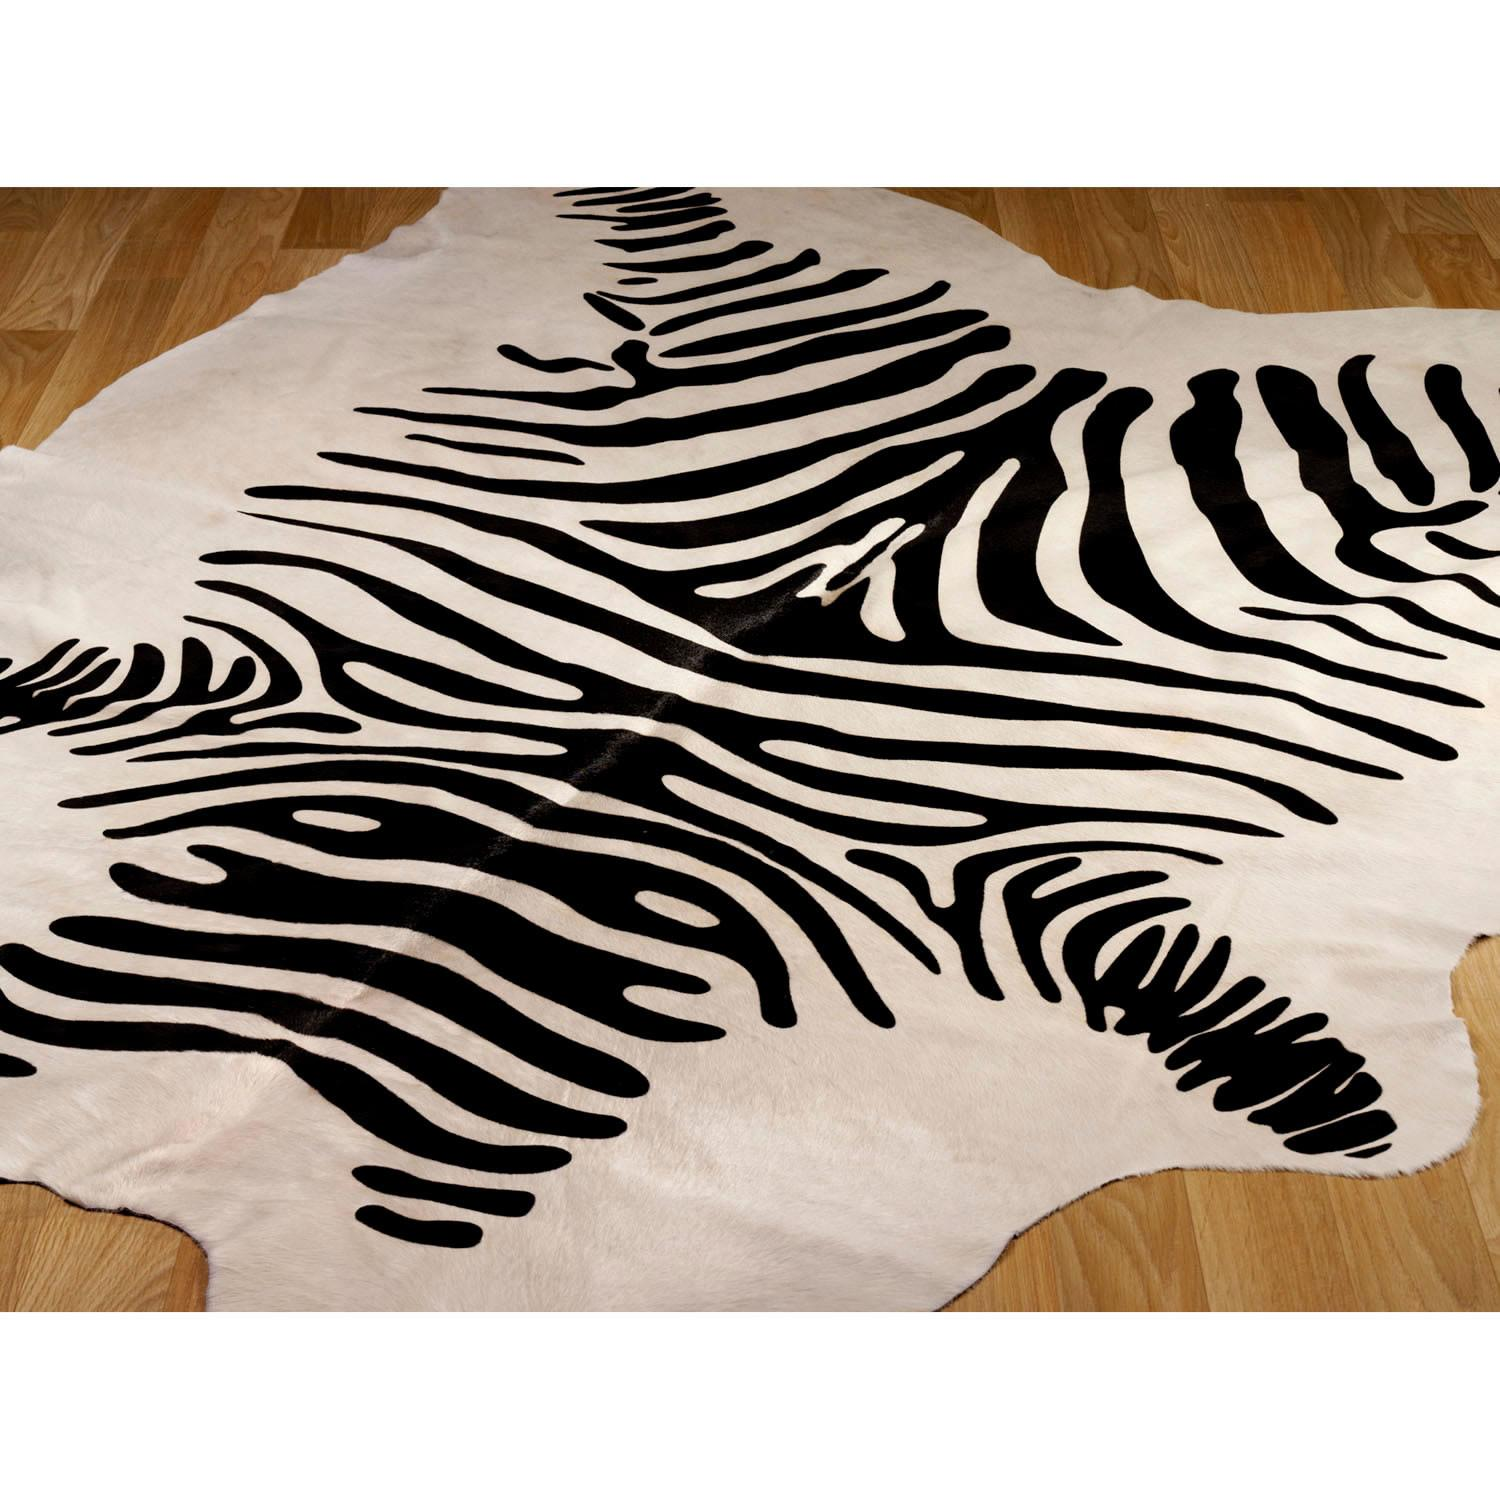 Coffee Tables Cow Skin Rugs Pottery Barn Zebra Rug